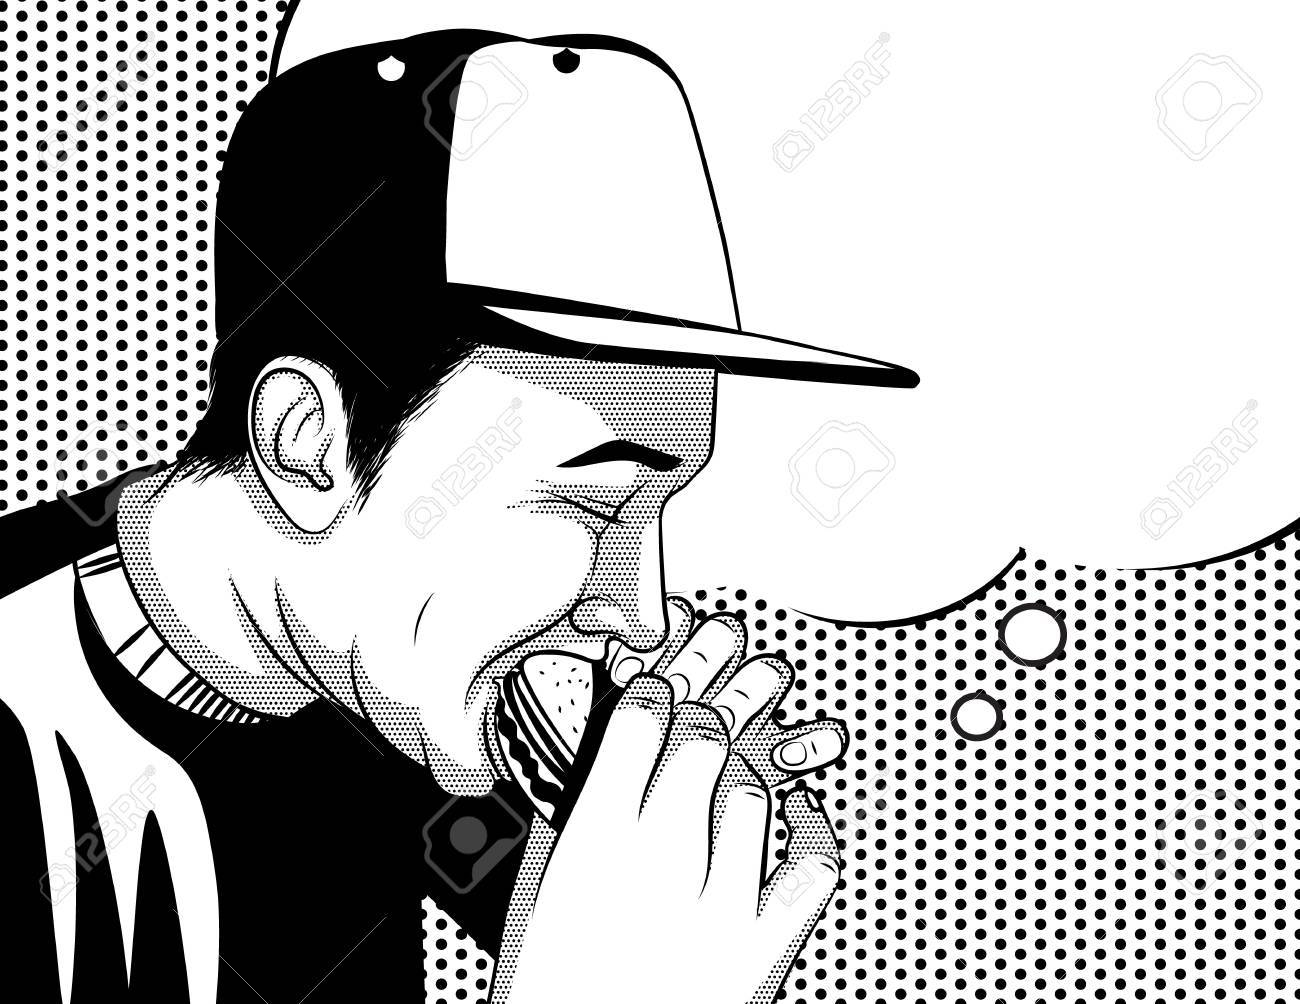 Open mouth eating clipart black and white clip art transparent download Black and white vector poster in comic art style of a guy ... clip art transparent download